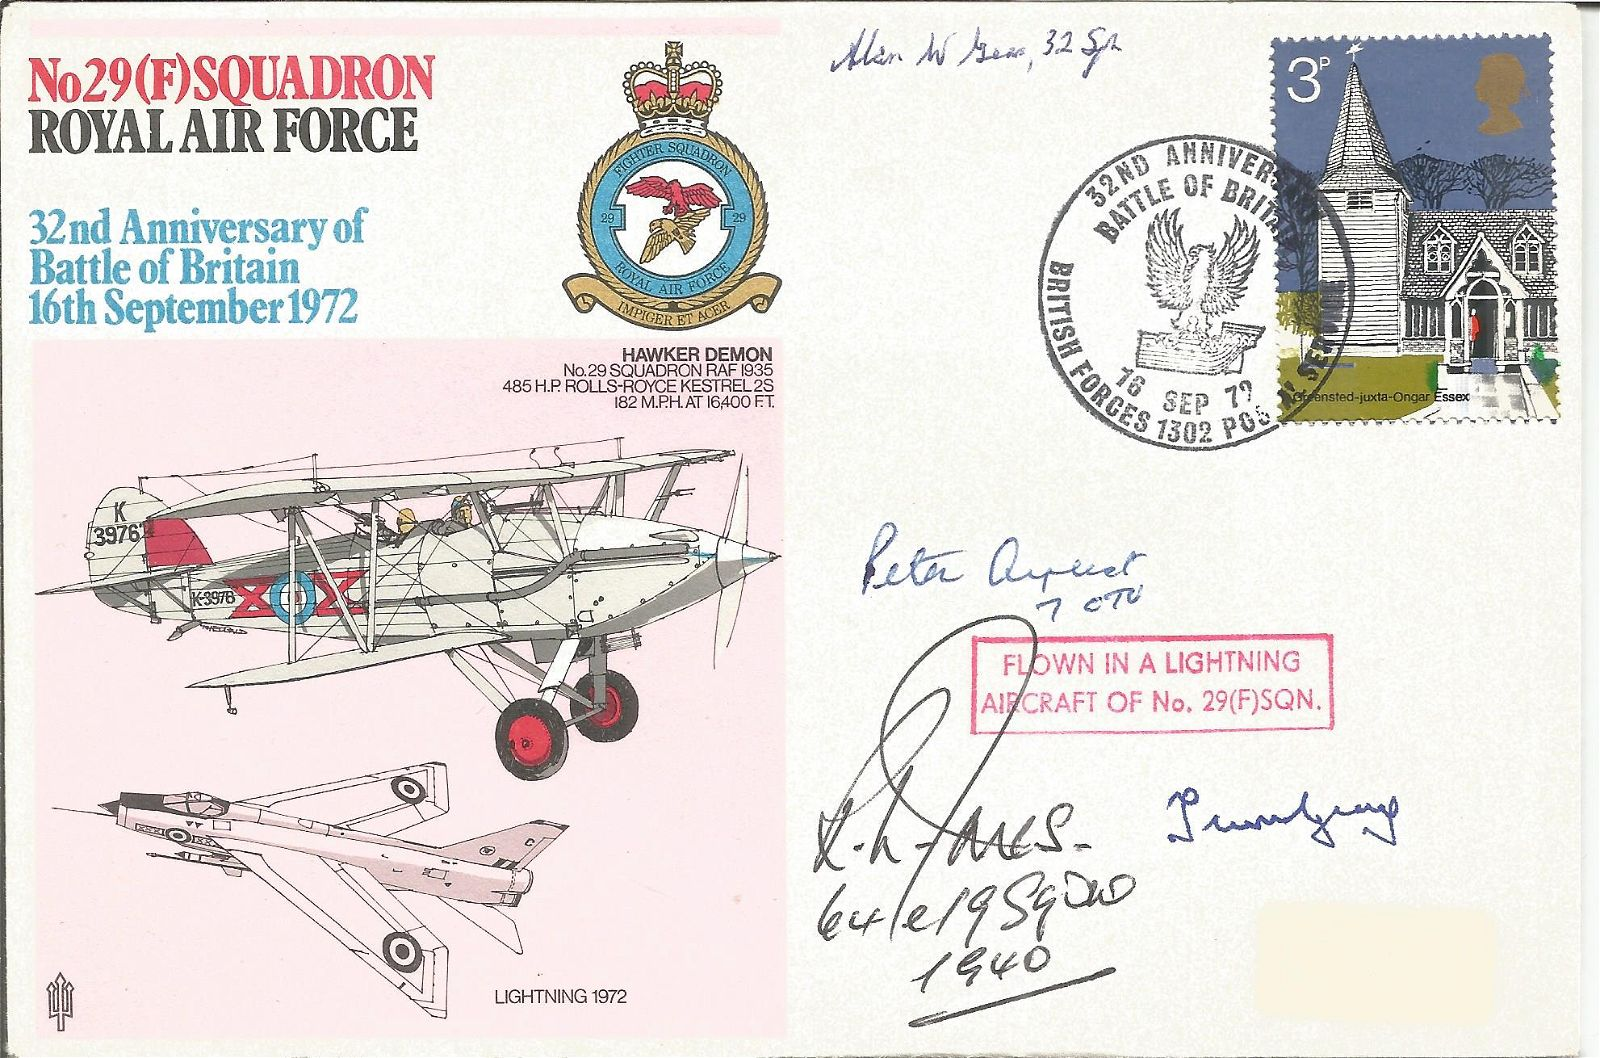 Peter Ayerst, R.L. Jones with two other signed FDC